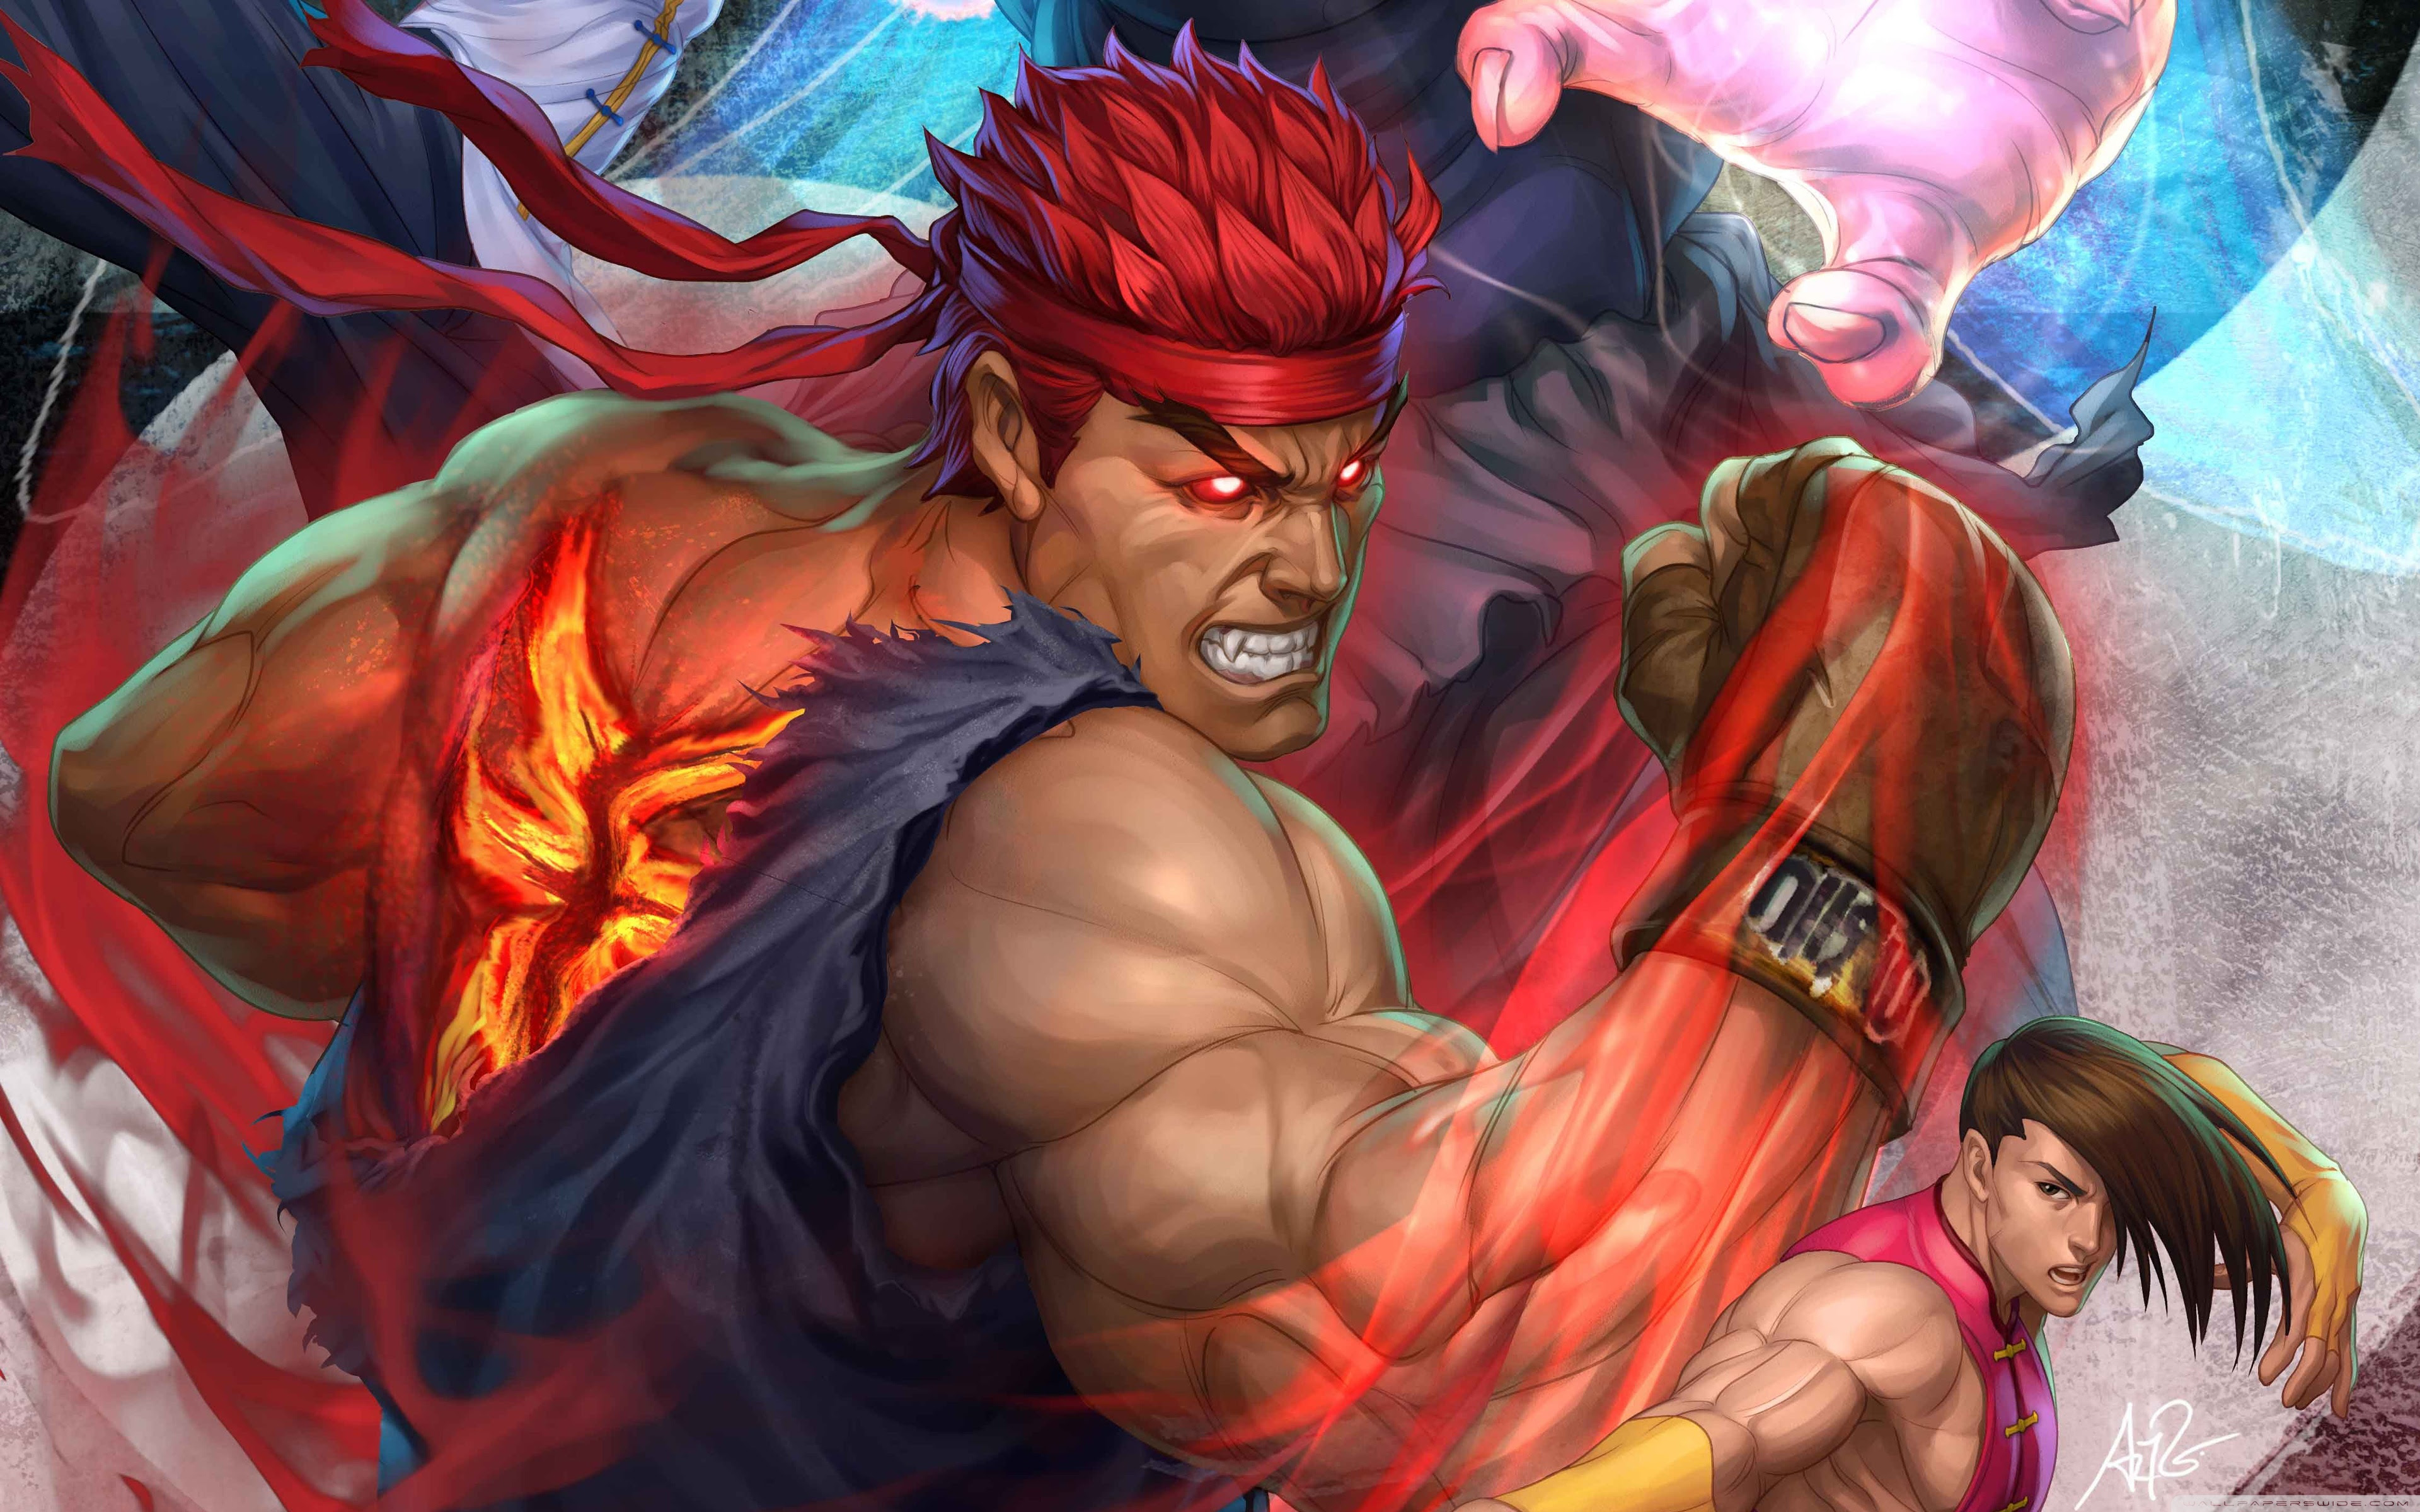 Street Fighter Hd Wallpaper 3840x2400 67920